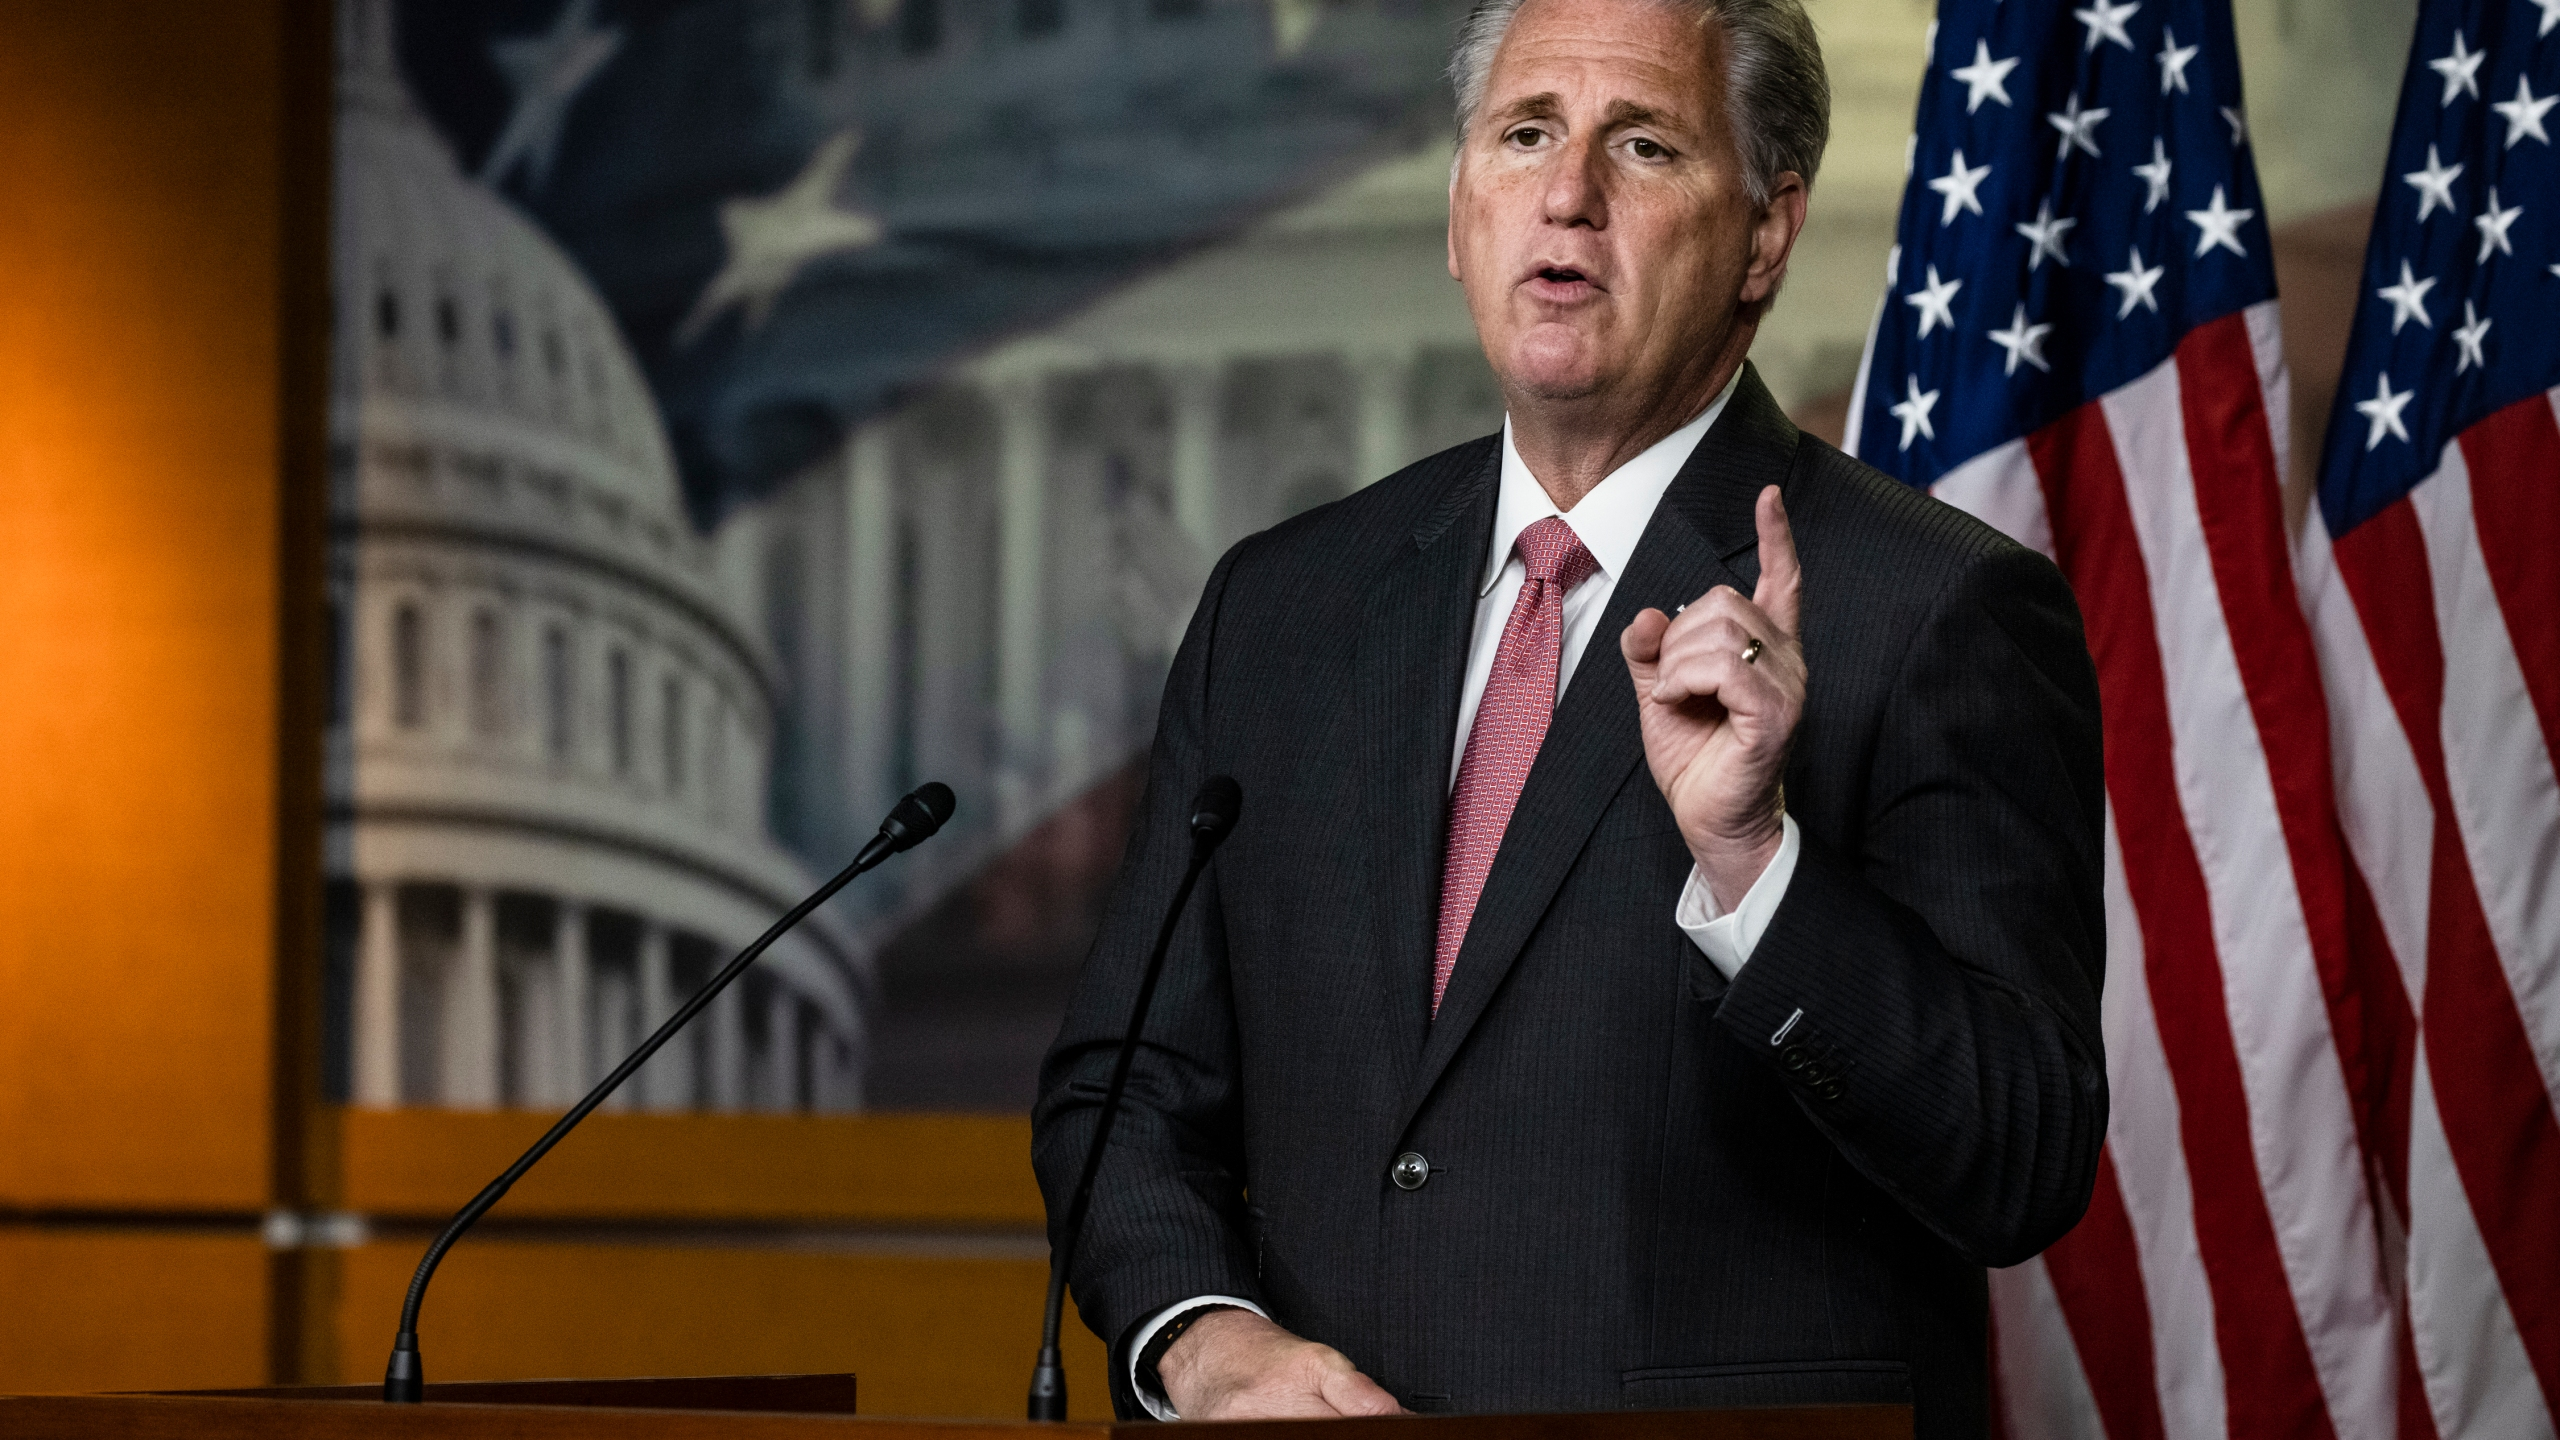 House Minority Leader Kevin McCarthy (R-CA) speaks during a press conference at the U.S. Capitol on Nov. 12, 2020. (Samuel Corum/Getty Images)